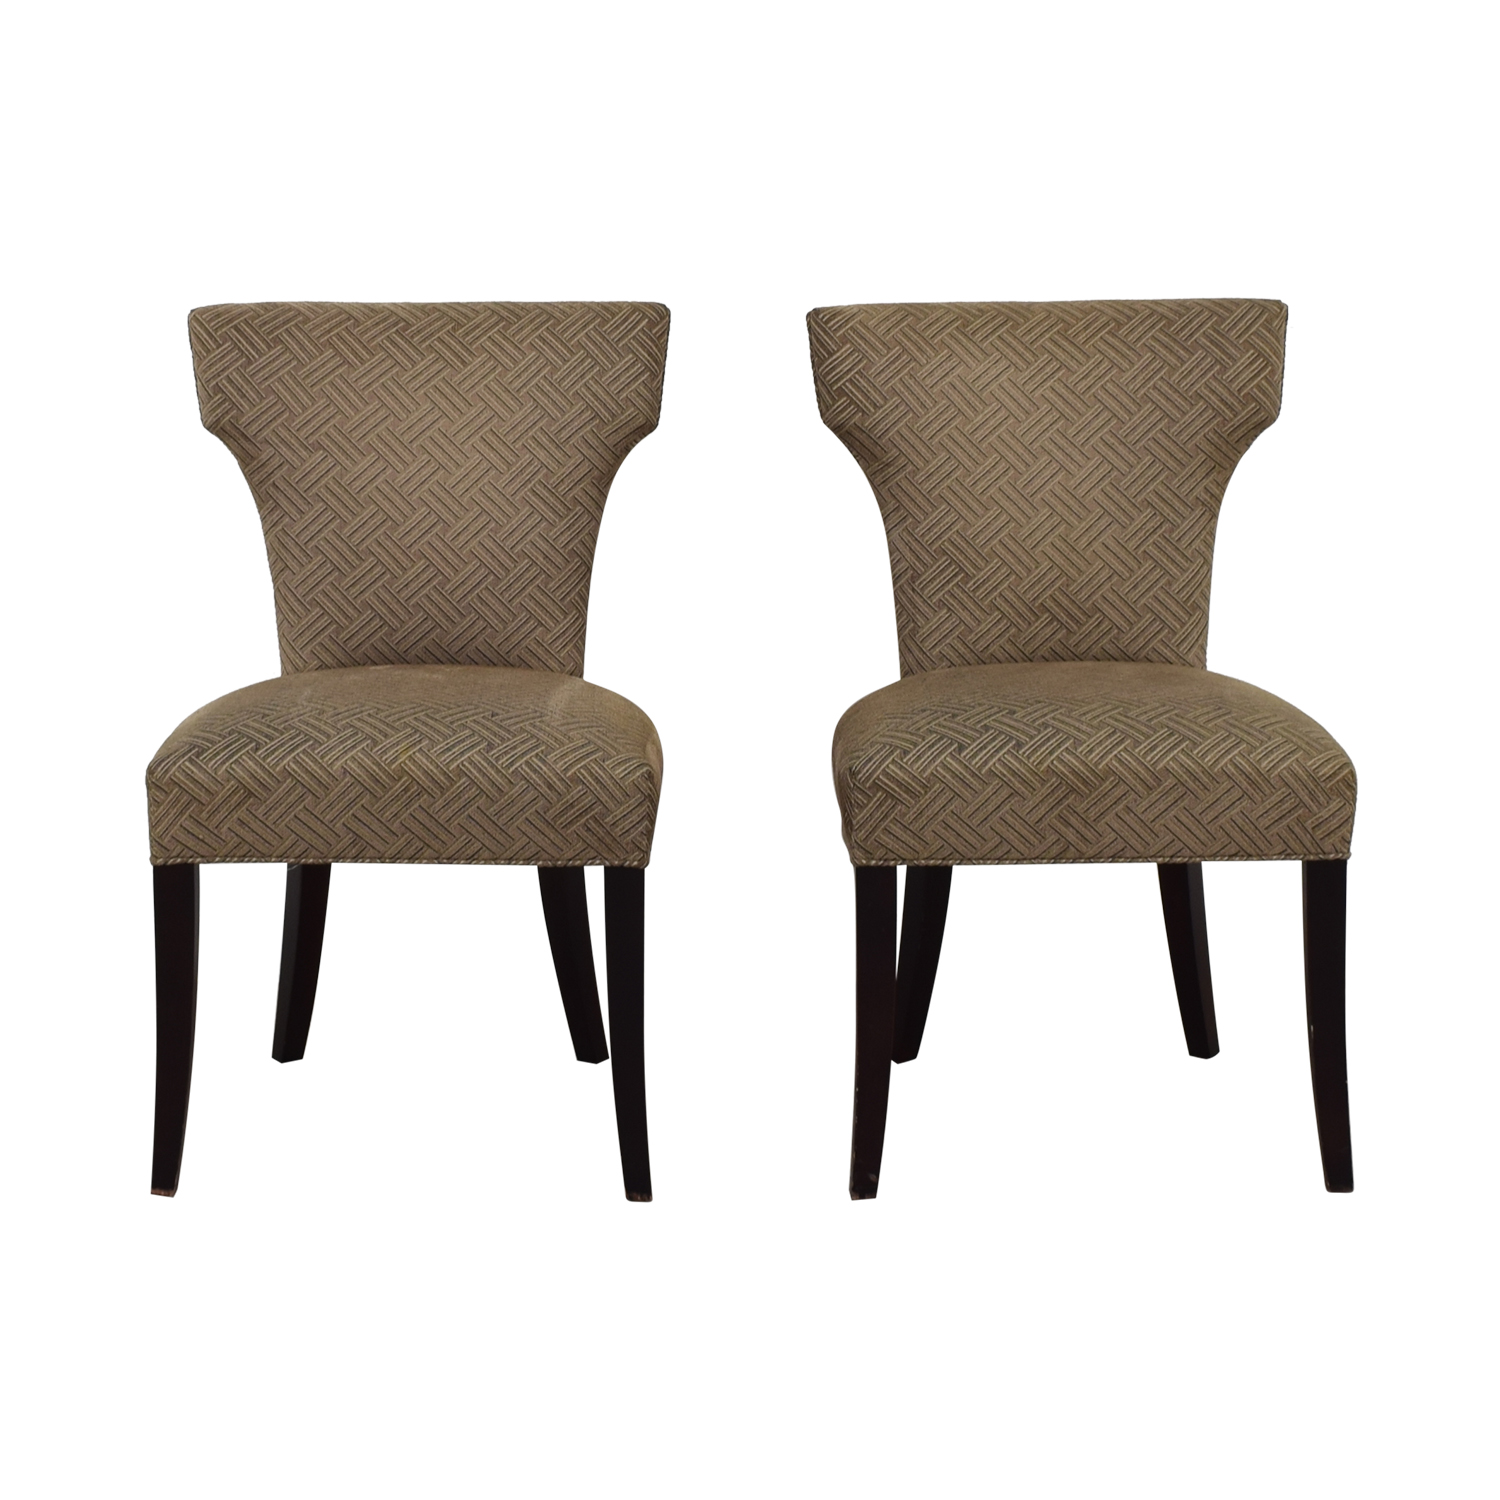 Crate & Barrel Crate & Barrel Sasha Upholstered Dining Chairs Dining Chairs